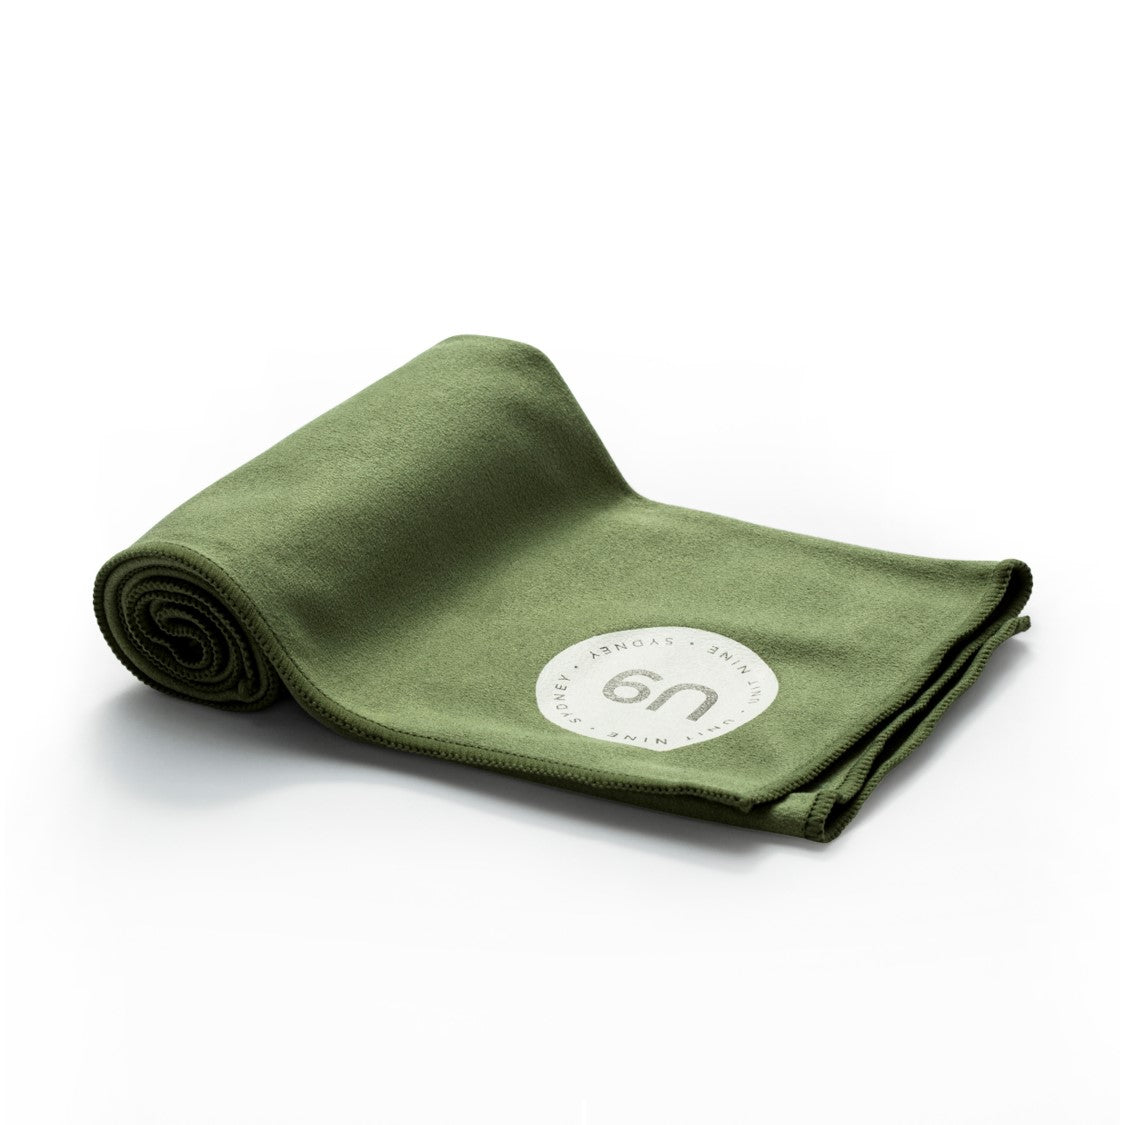 UNIT NINE Khaki Sweat Towel 3